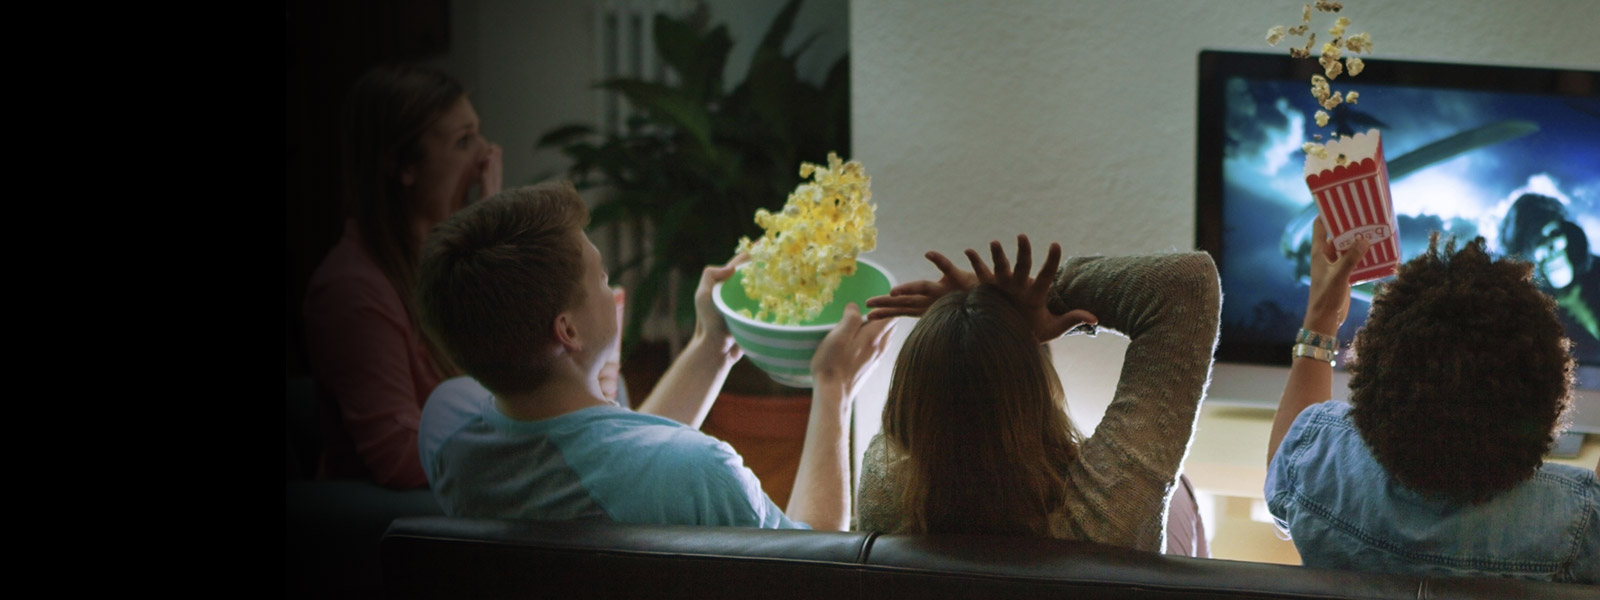 People sitting on couch watching a movie